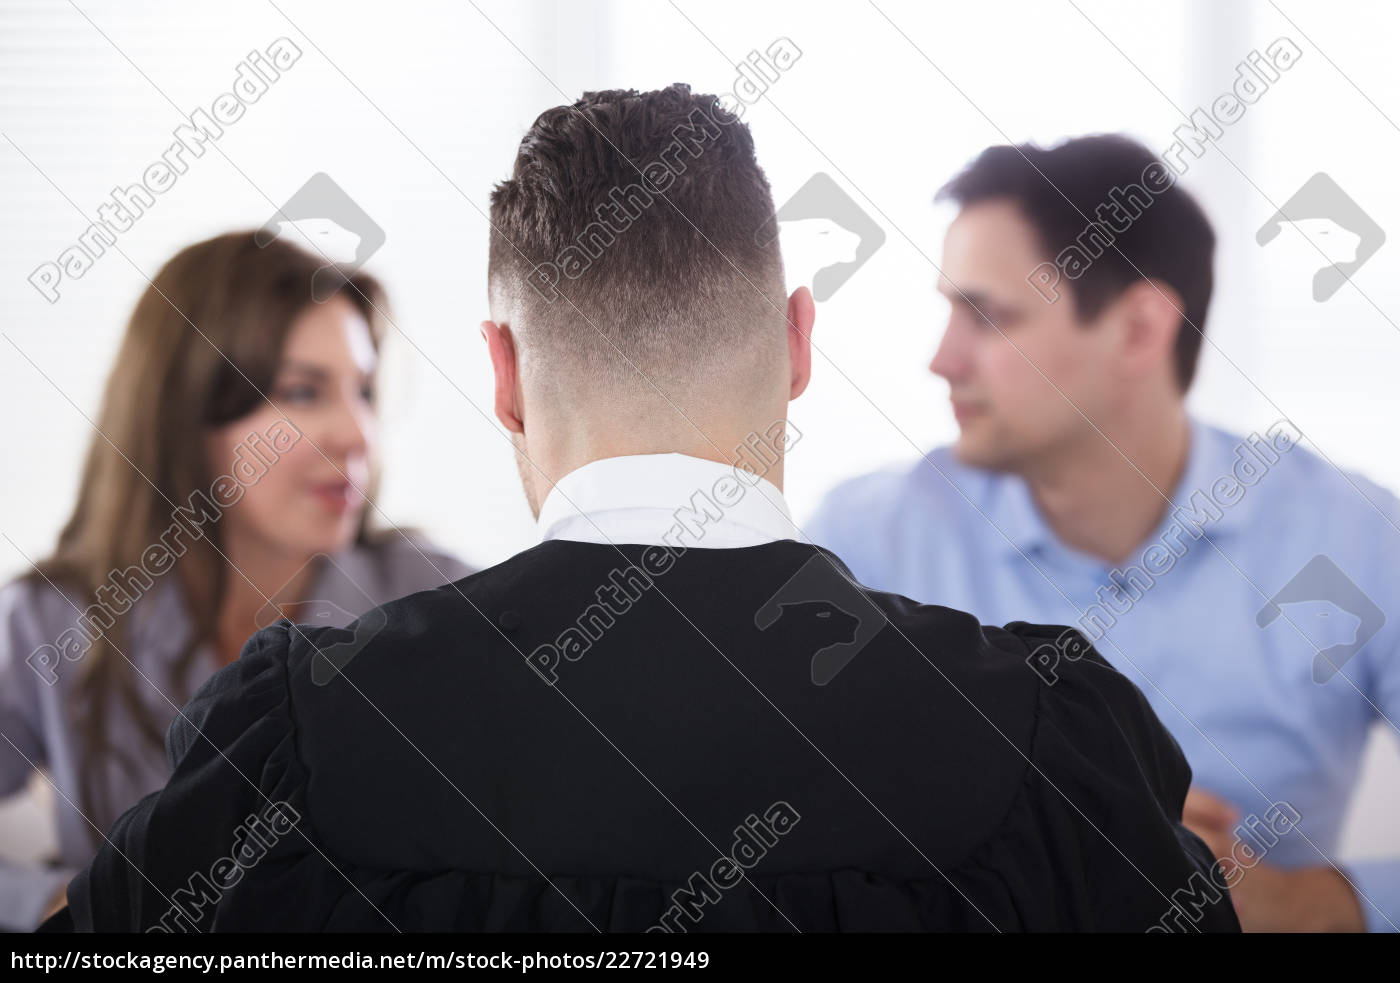 couple, quarreling, in, front, of, judge - 22721949